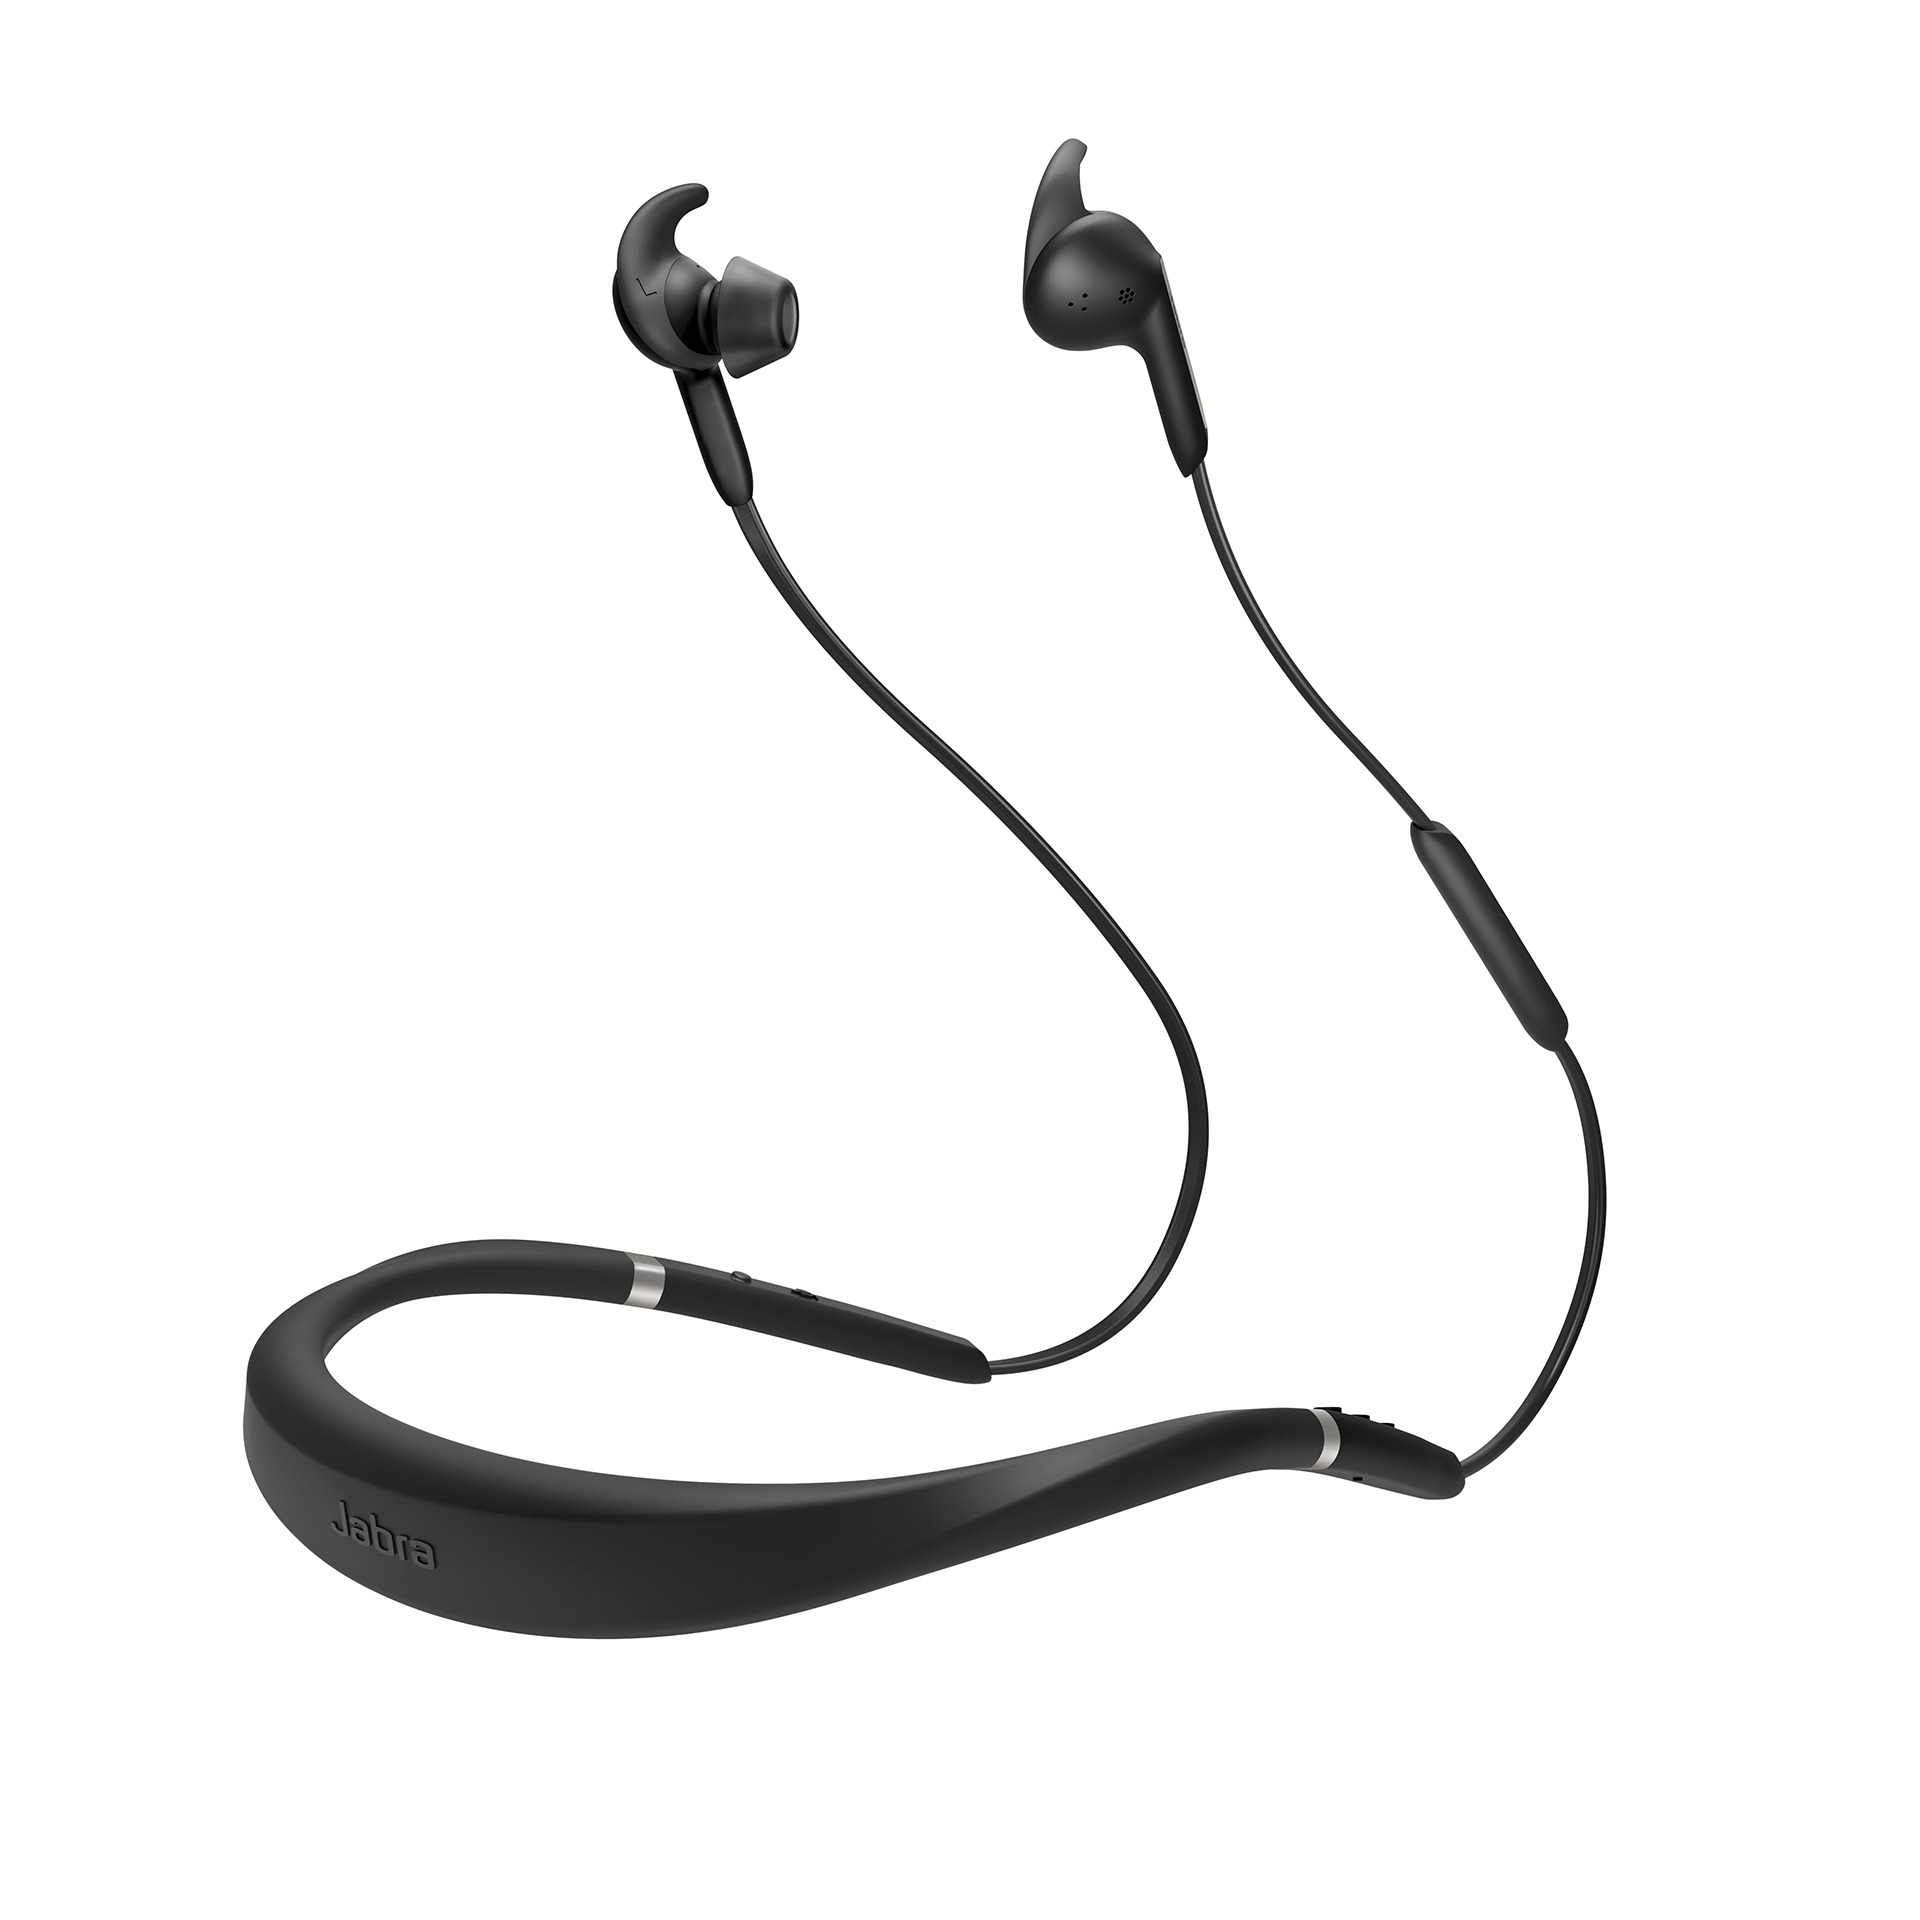 Jabra-Elite-65e-Bluetooth-Headset-ANC-Headphones-Manufacturer-Refurbished thumbnail 5